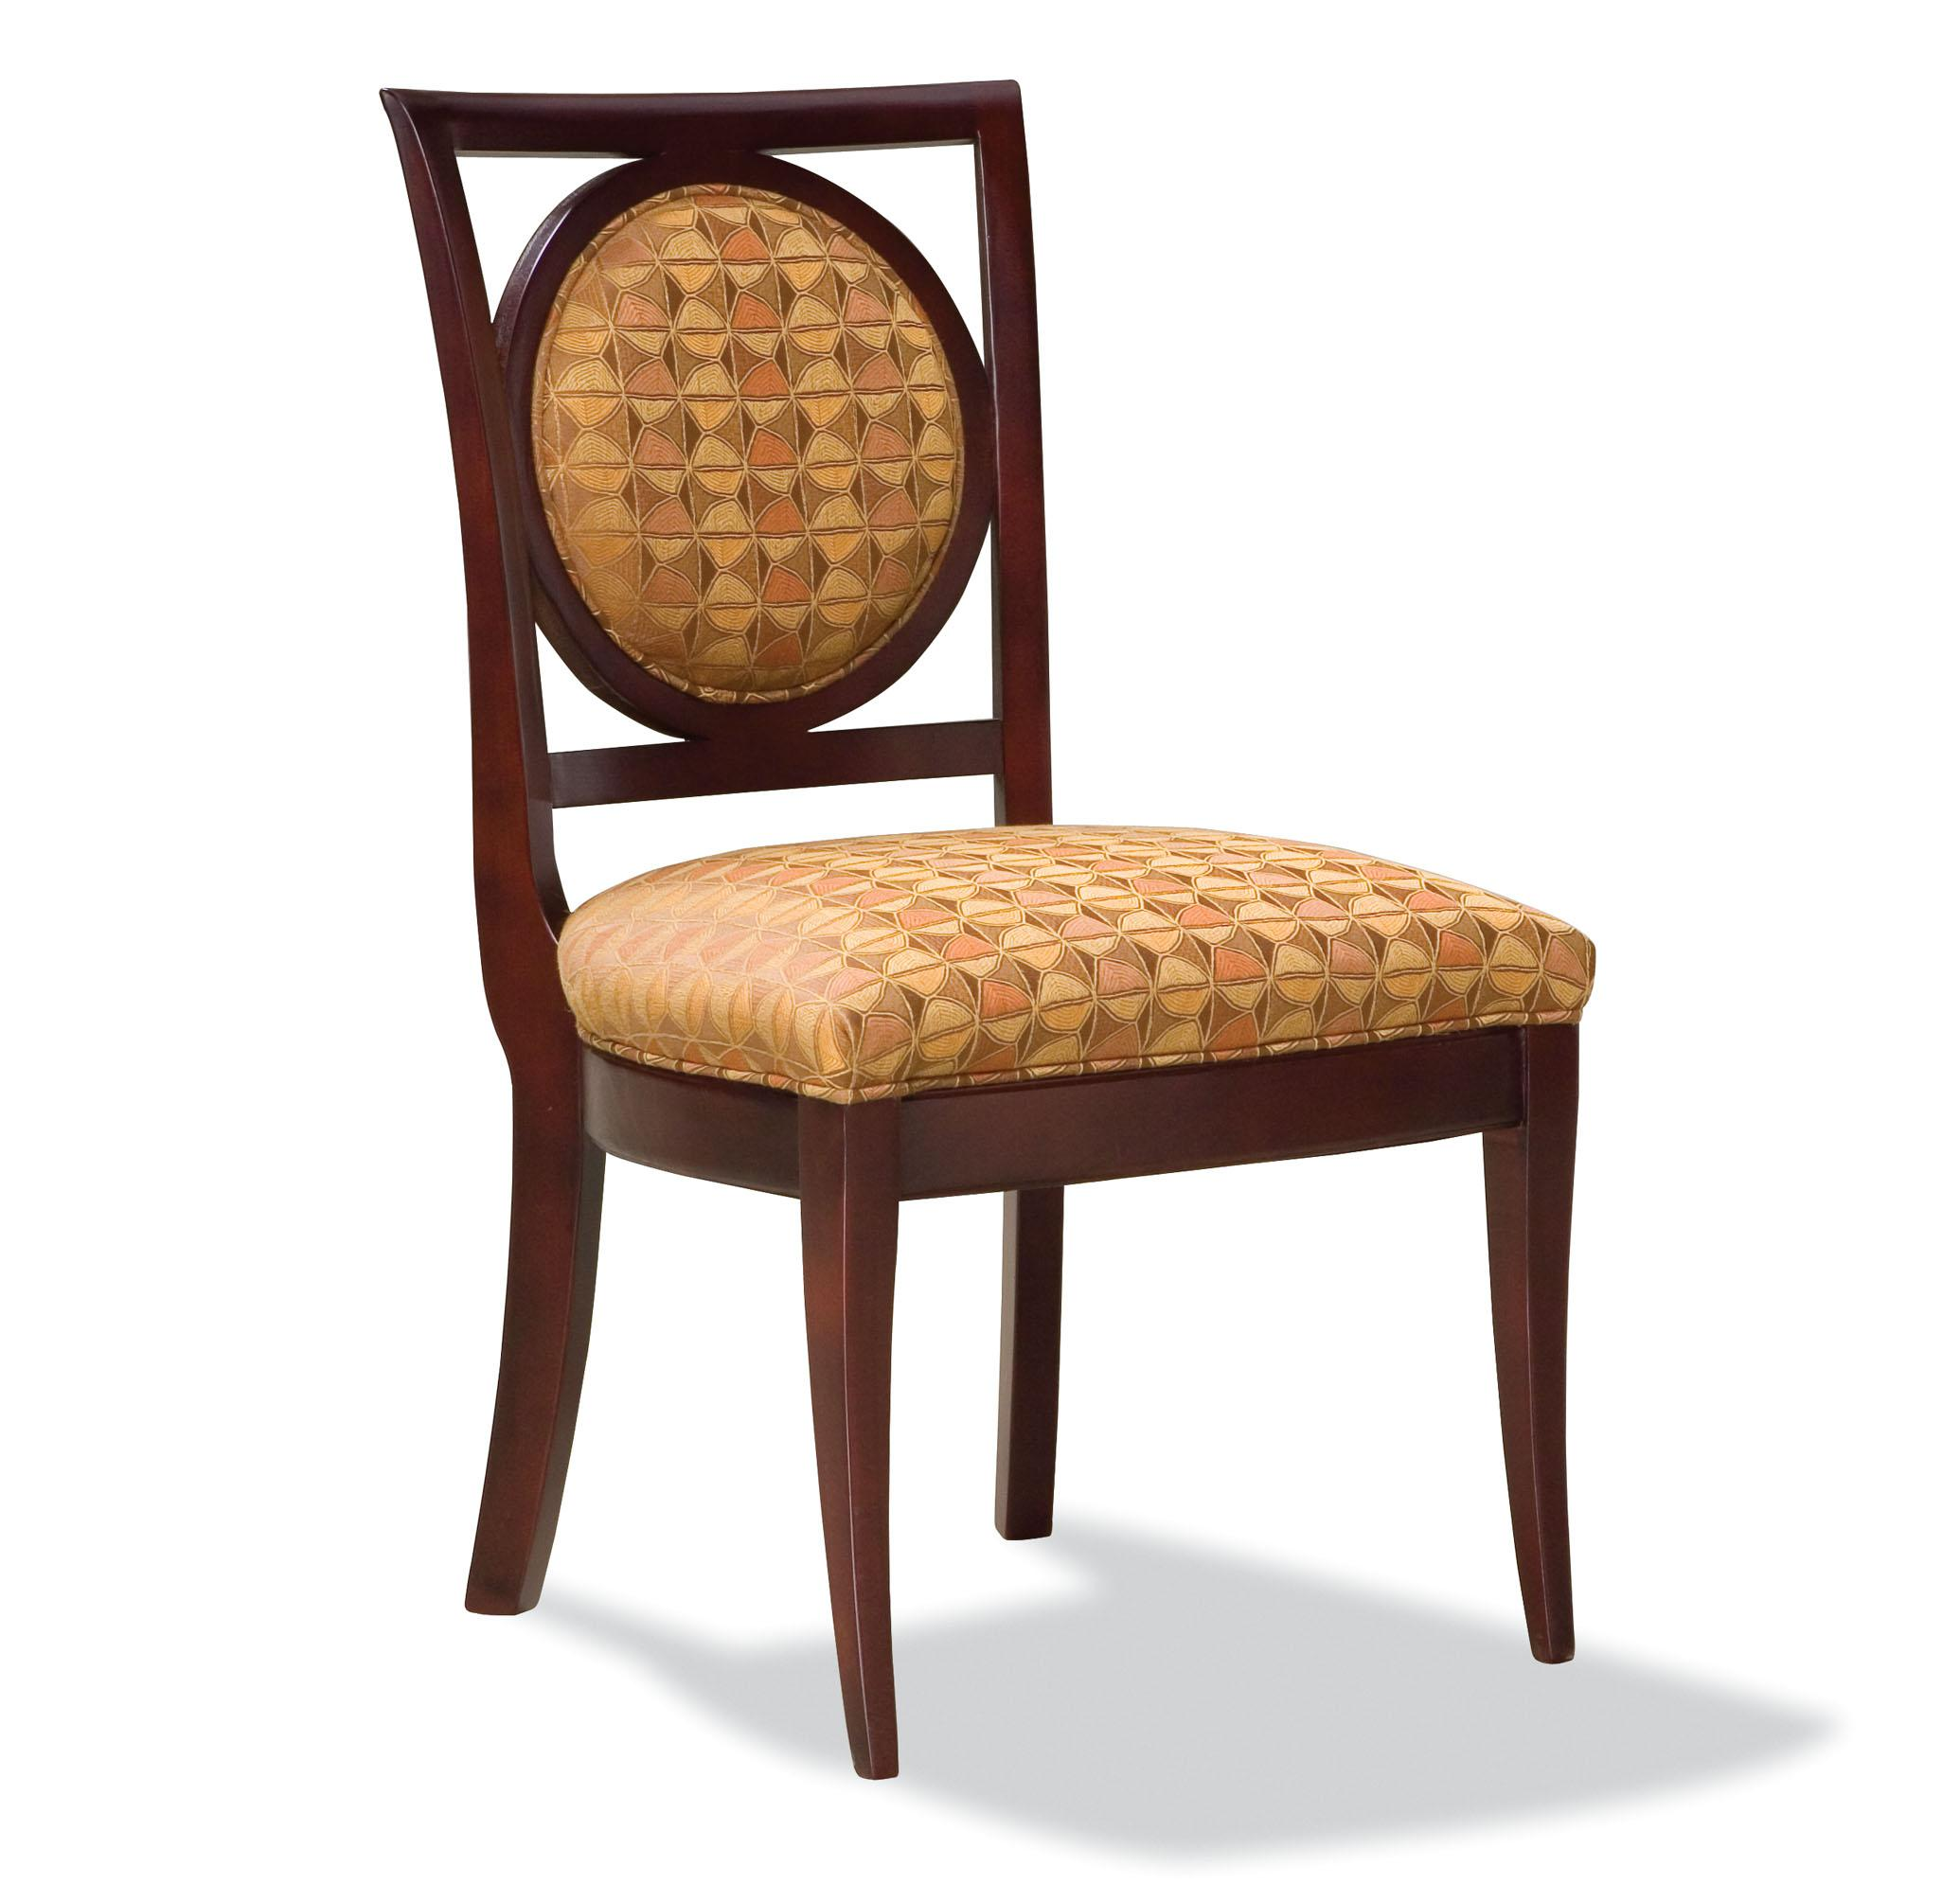 Fairfield Chairs Armless Accent Chair - Item Number: 5414-05